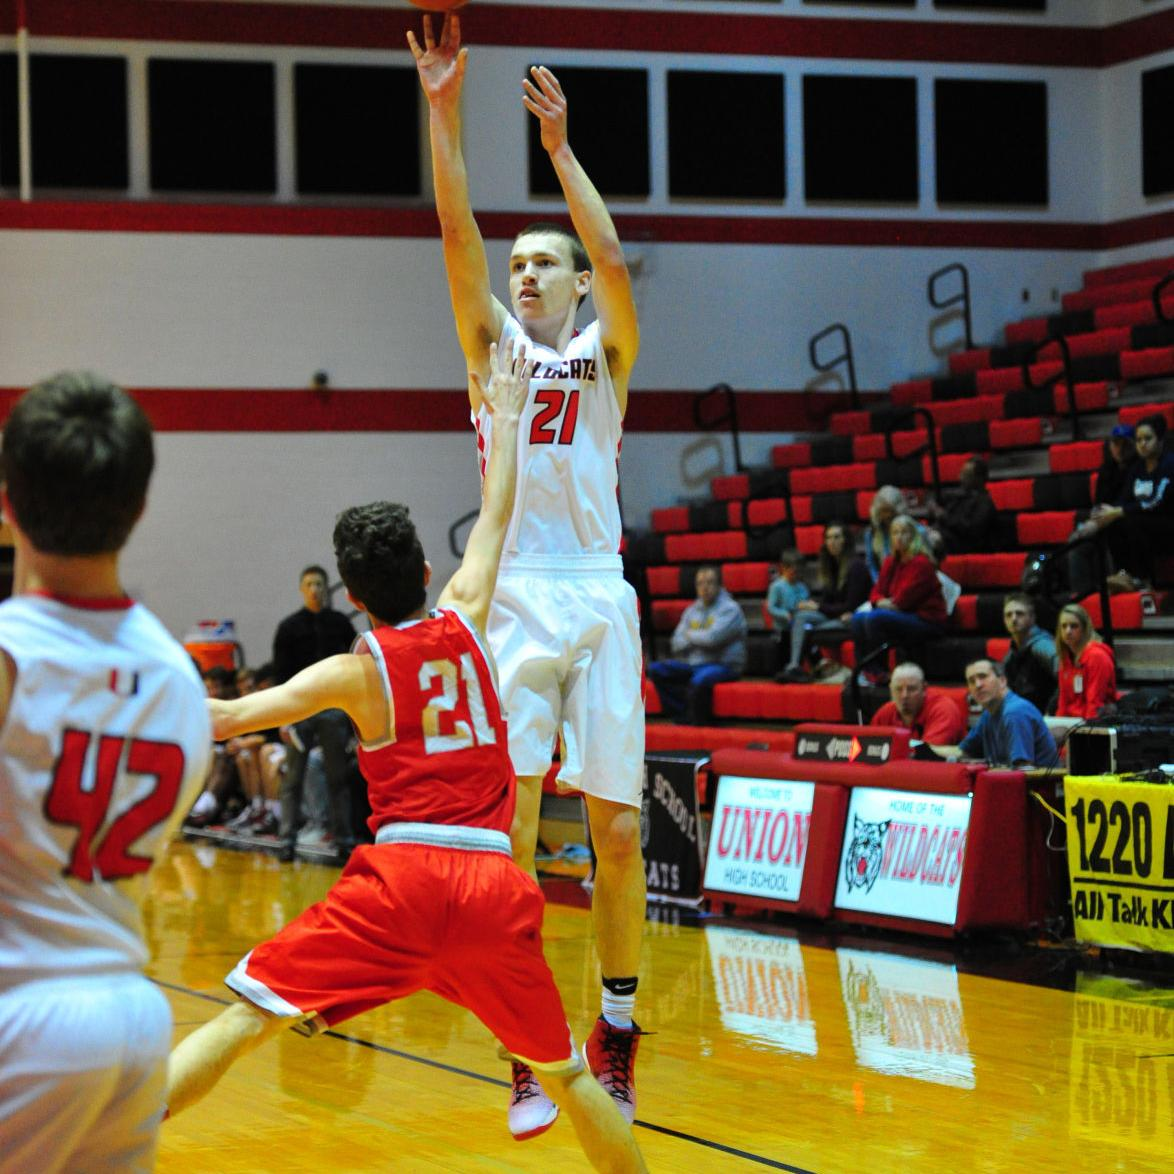 Boys Basketball — St. Clair at Union